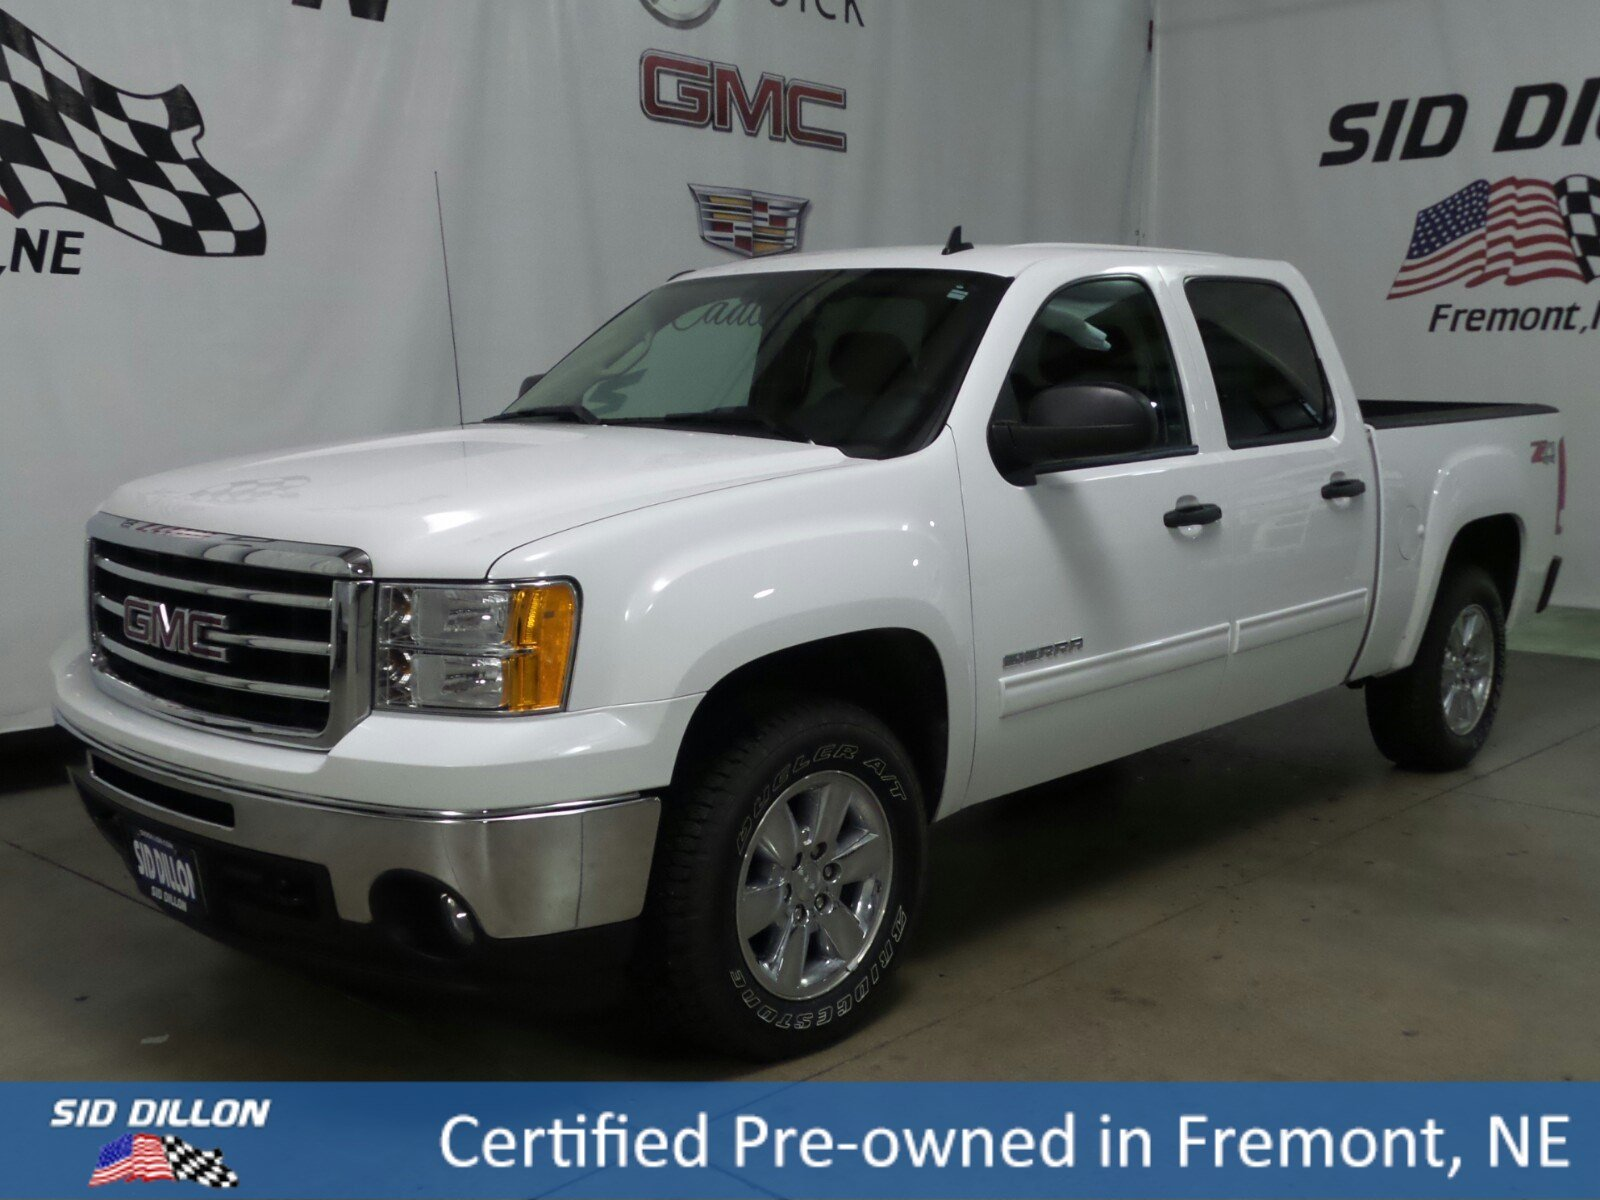 Certified Pre Owned 2013 Gmc Sierra 1500 Sle Crew Cab In Fremont 2012 Toyota Venza Controller Area Network Wiring Diagram